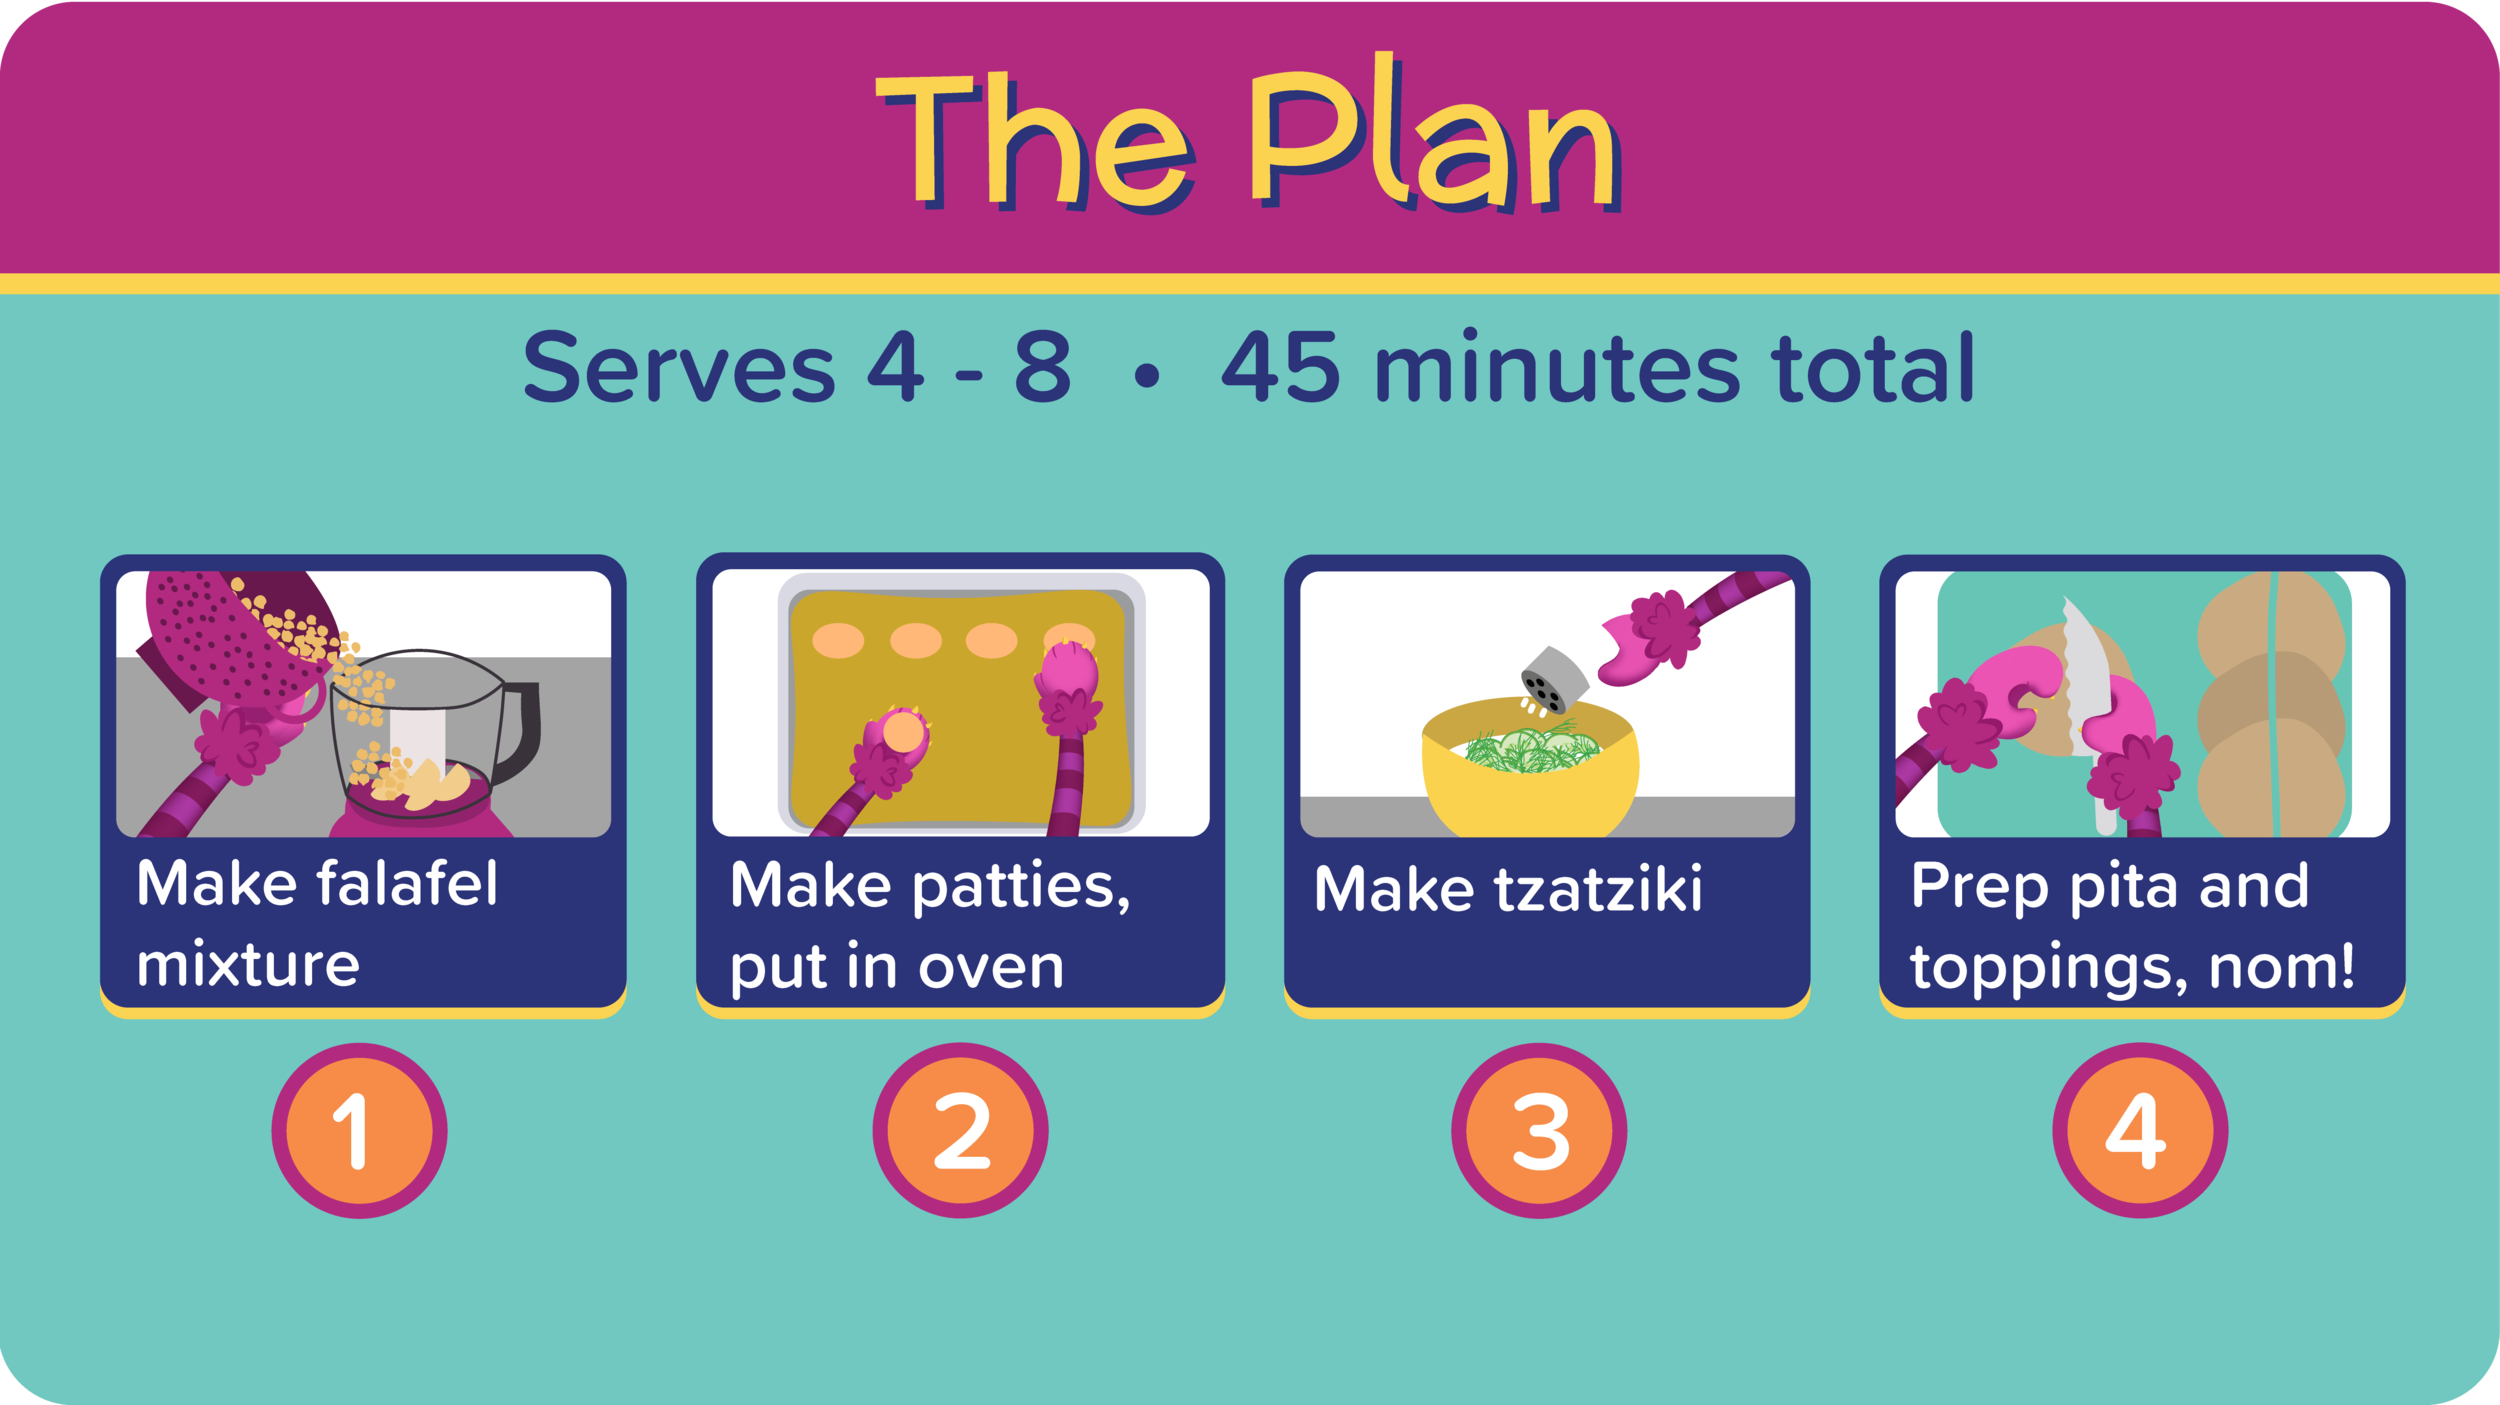 02_FalafelPocketsZingyTzatziki_The Plan-01.png